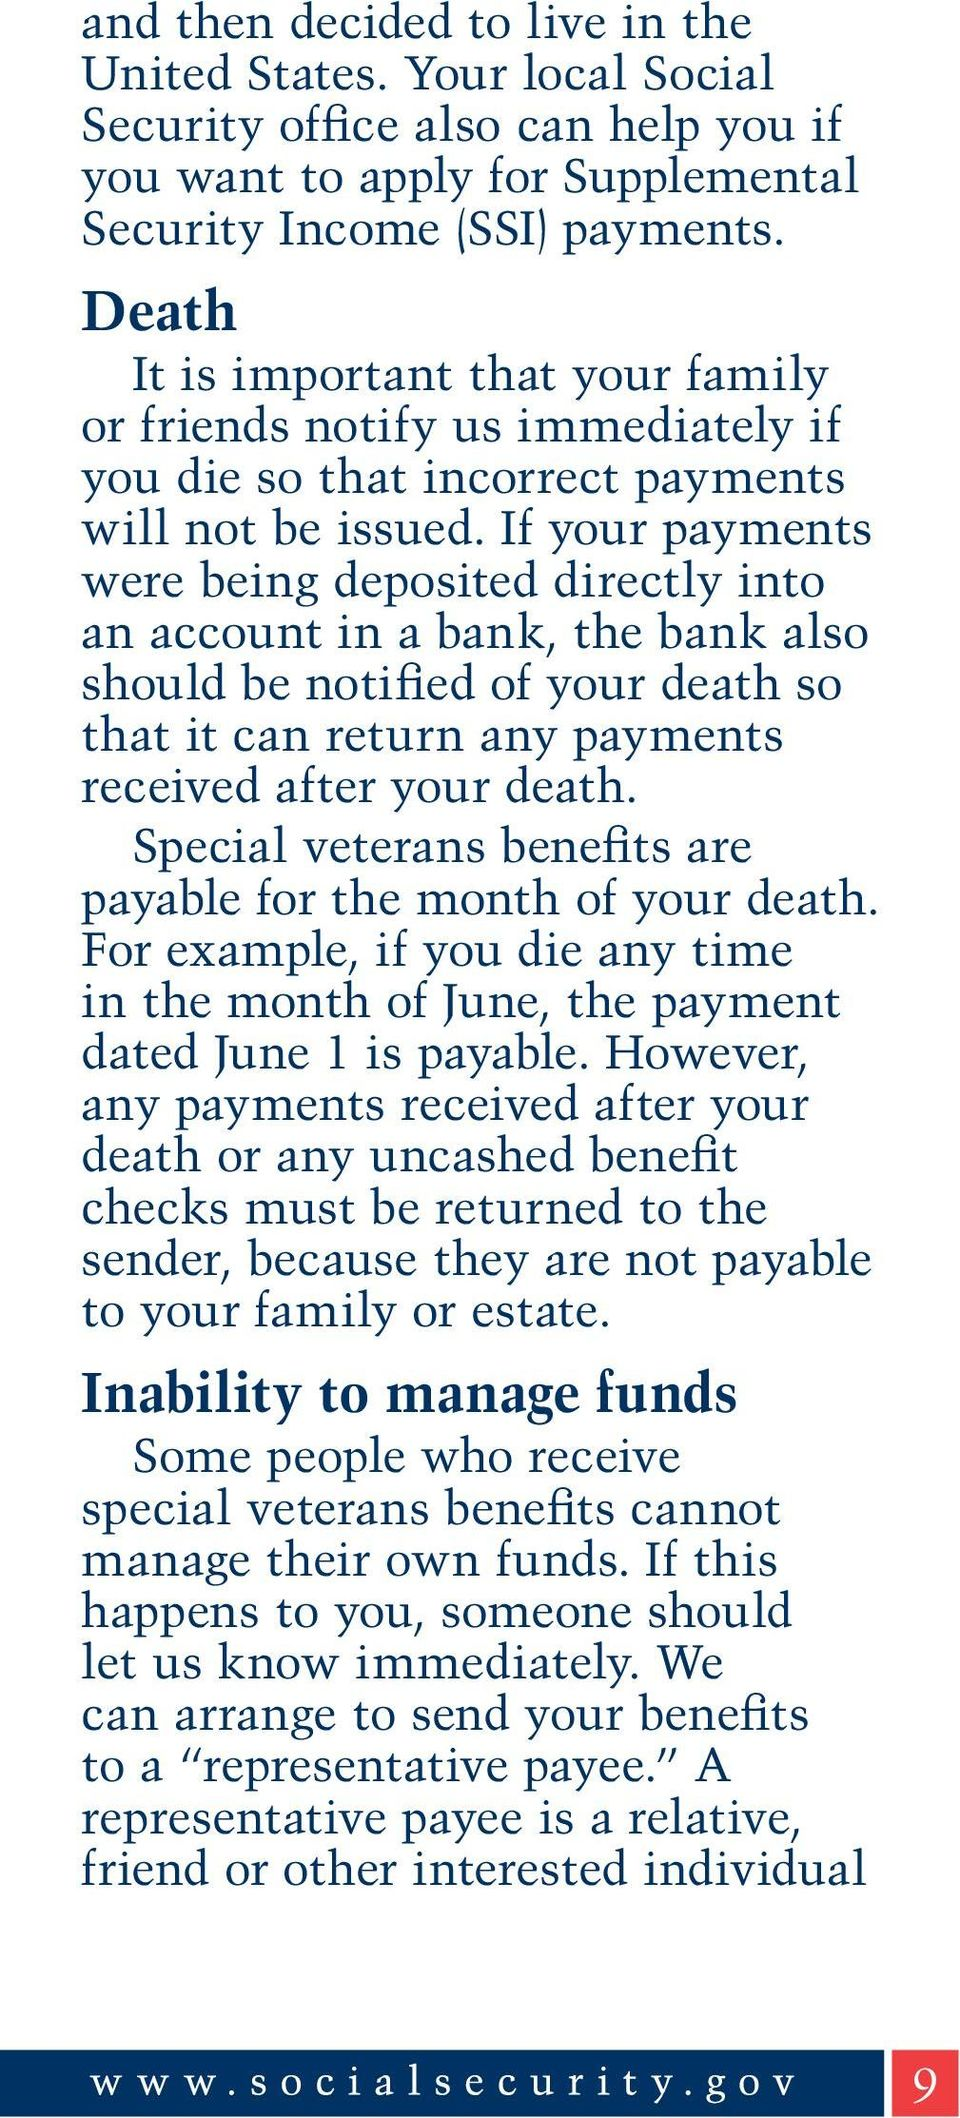 If your payments were being deposited directly into an account in a bank, the bank also should be notified of your death so that it can return any payments received after your death.